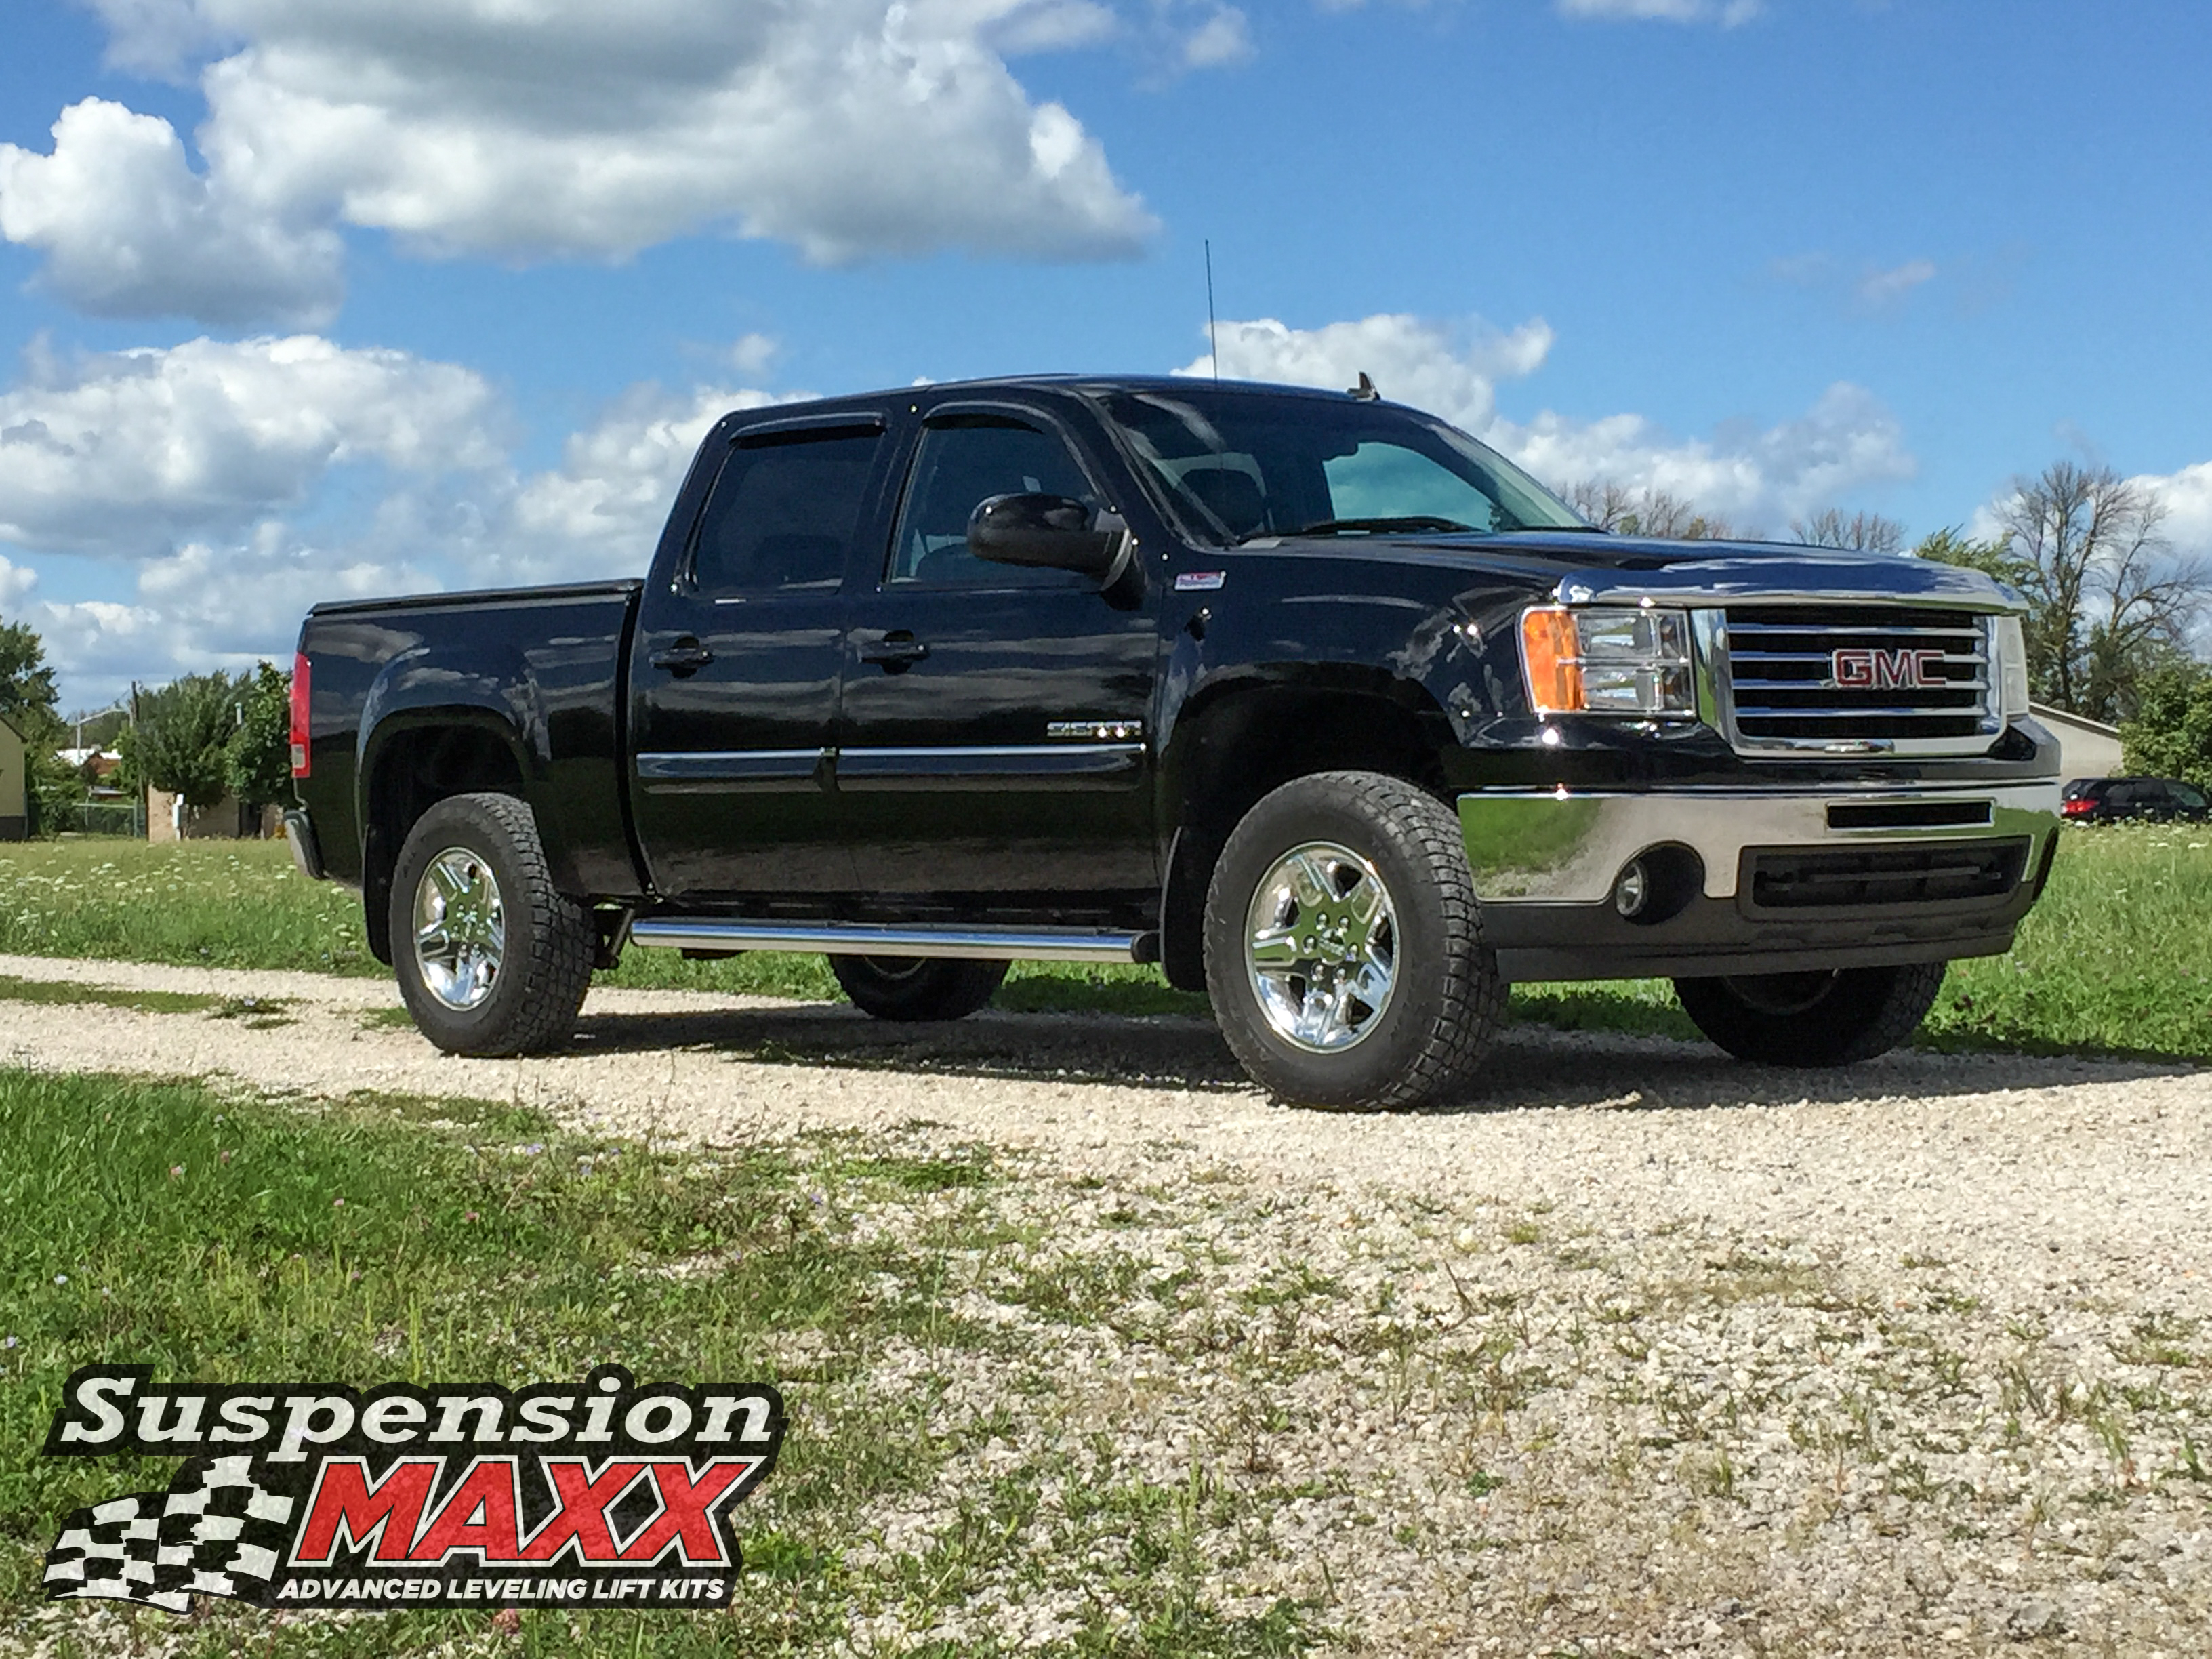 Maxxstak 1 5 2 2 25 2 5 Adjustable Front Leveling Kit Standard Suspension Smx Gm725 Suspensionmaxx